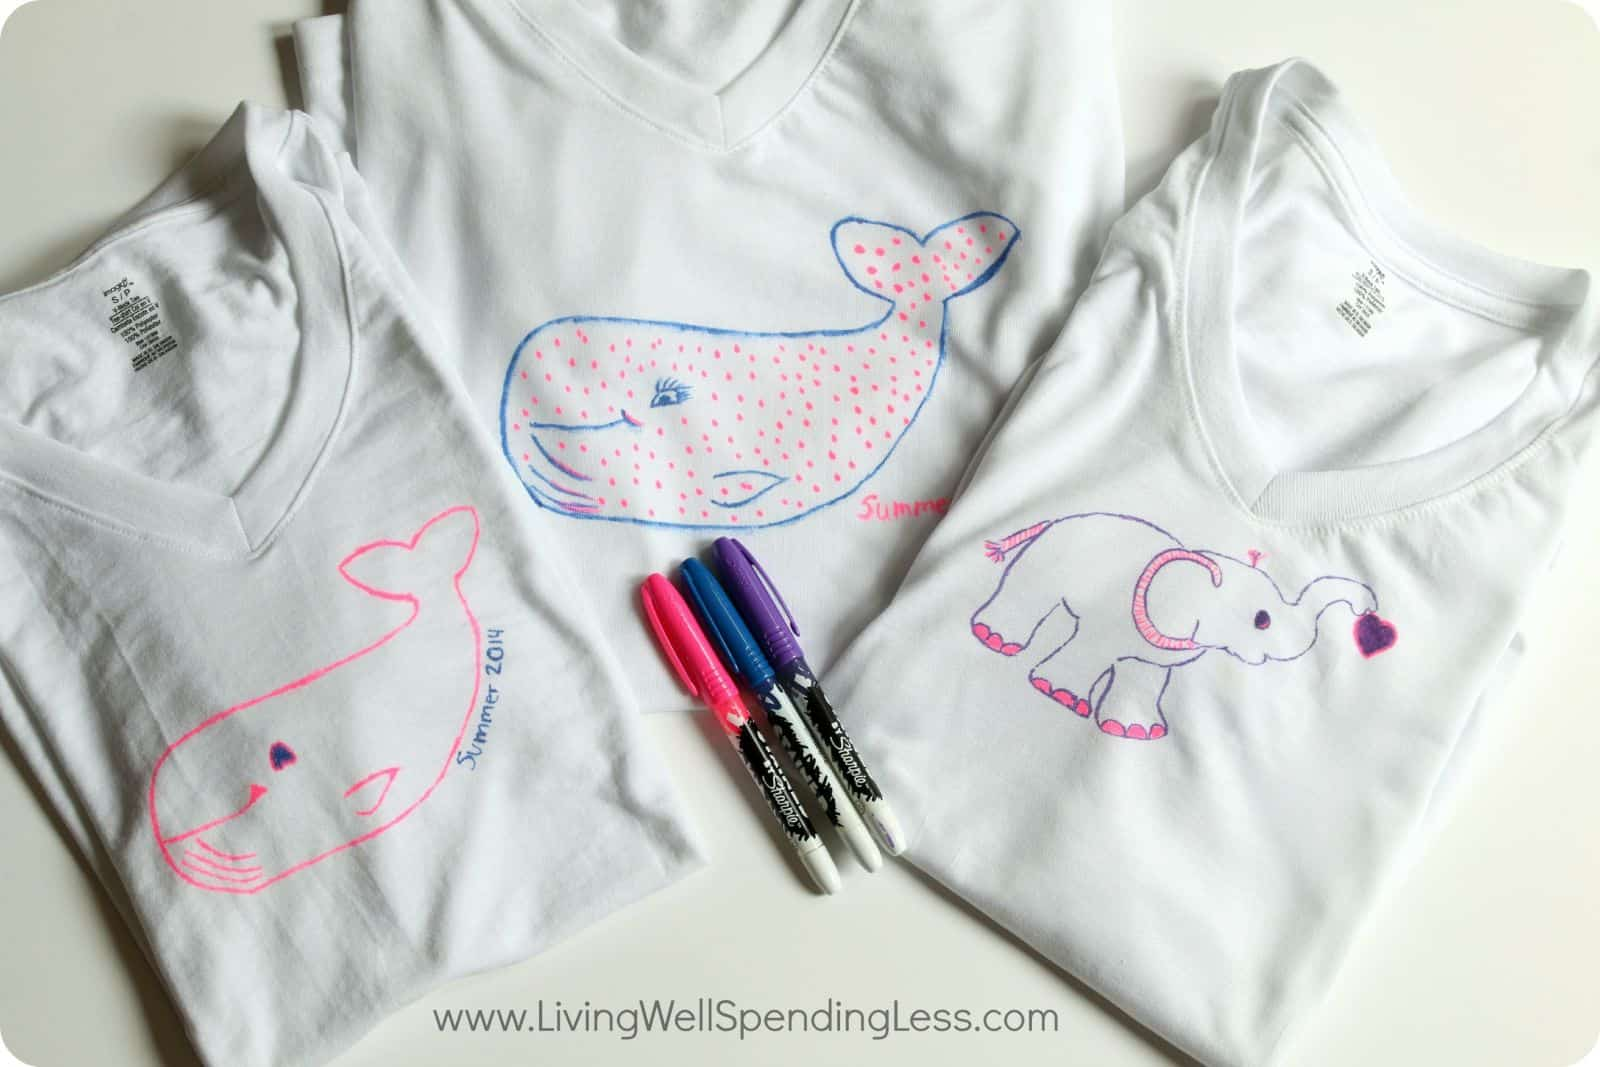 Craft ideas with sharpies - 10 Creative And Easy Sharpie Projects For Kids